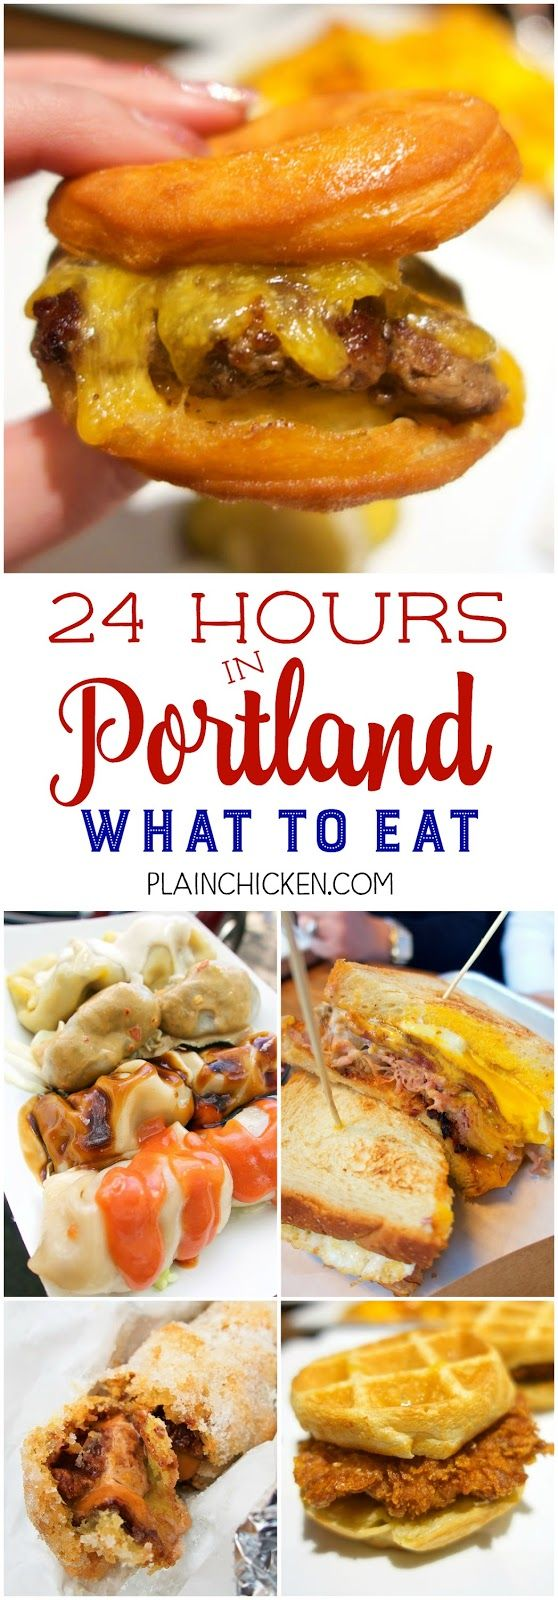 24 hours in Portland Oregon - what to eat! We didn't have a lot of time, but we packed in some AMAZING food! Life changing sandwiches,…